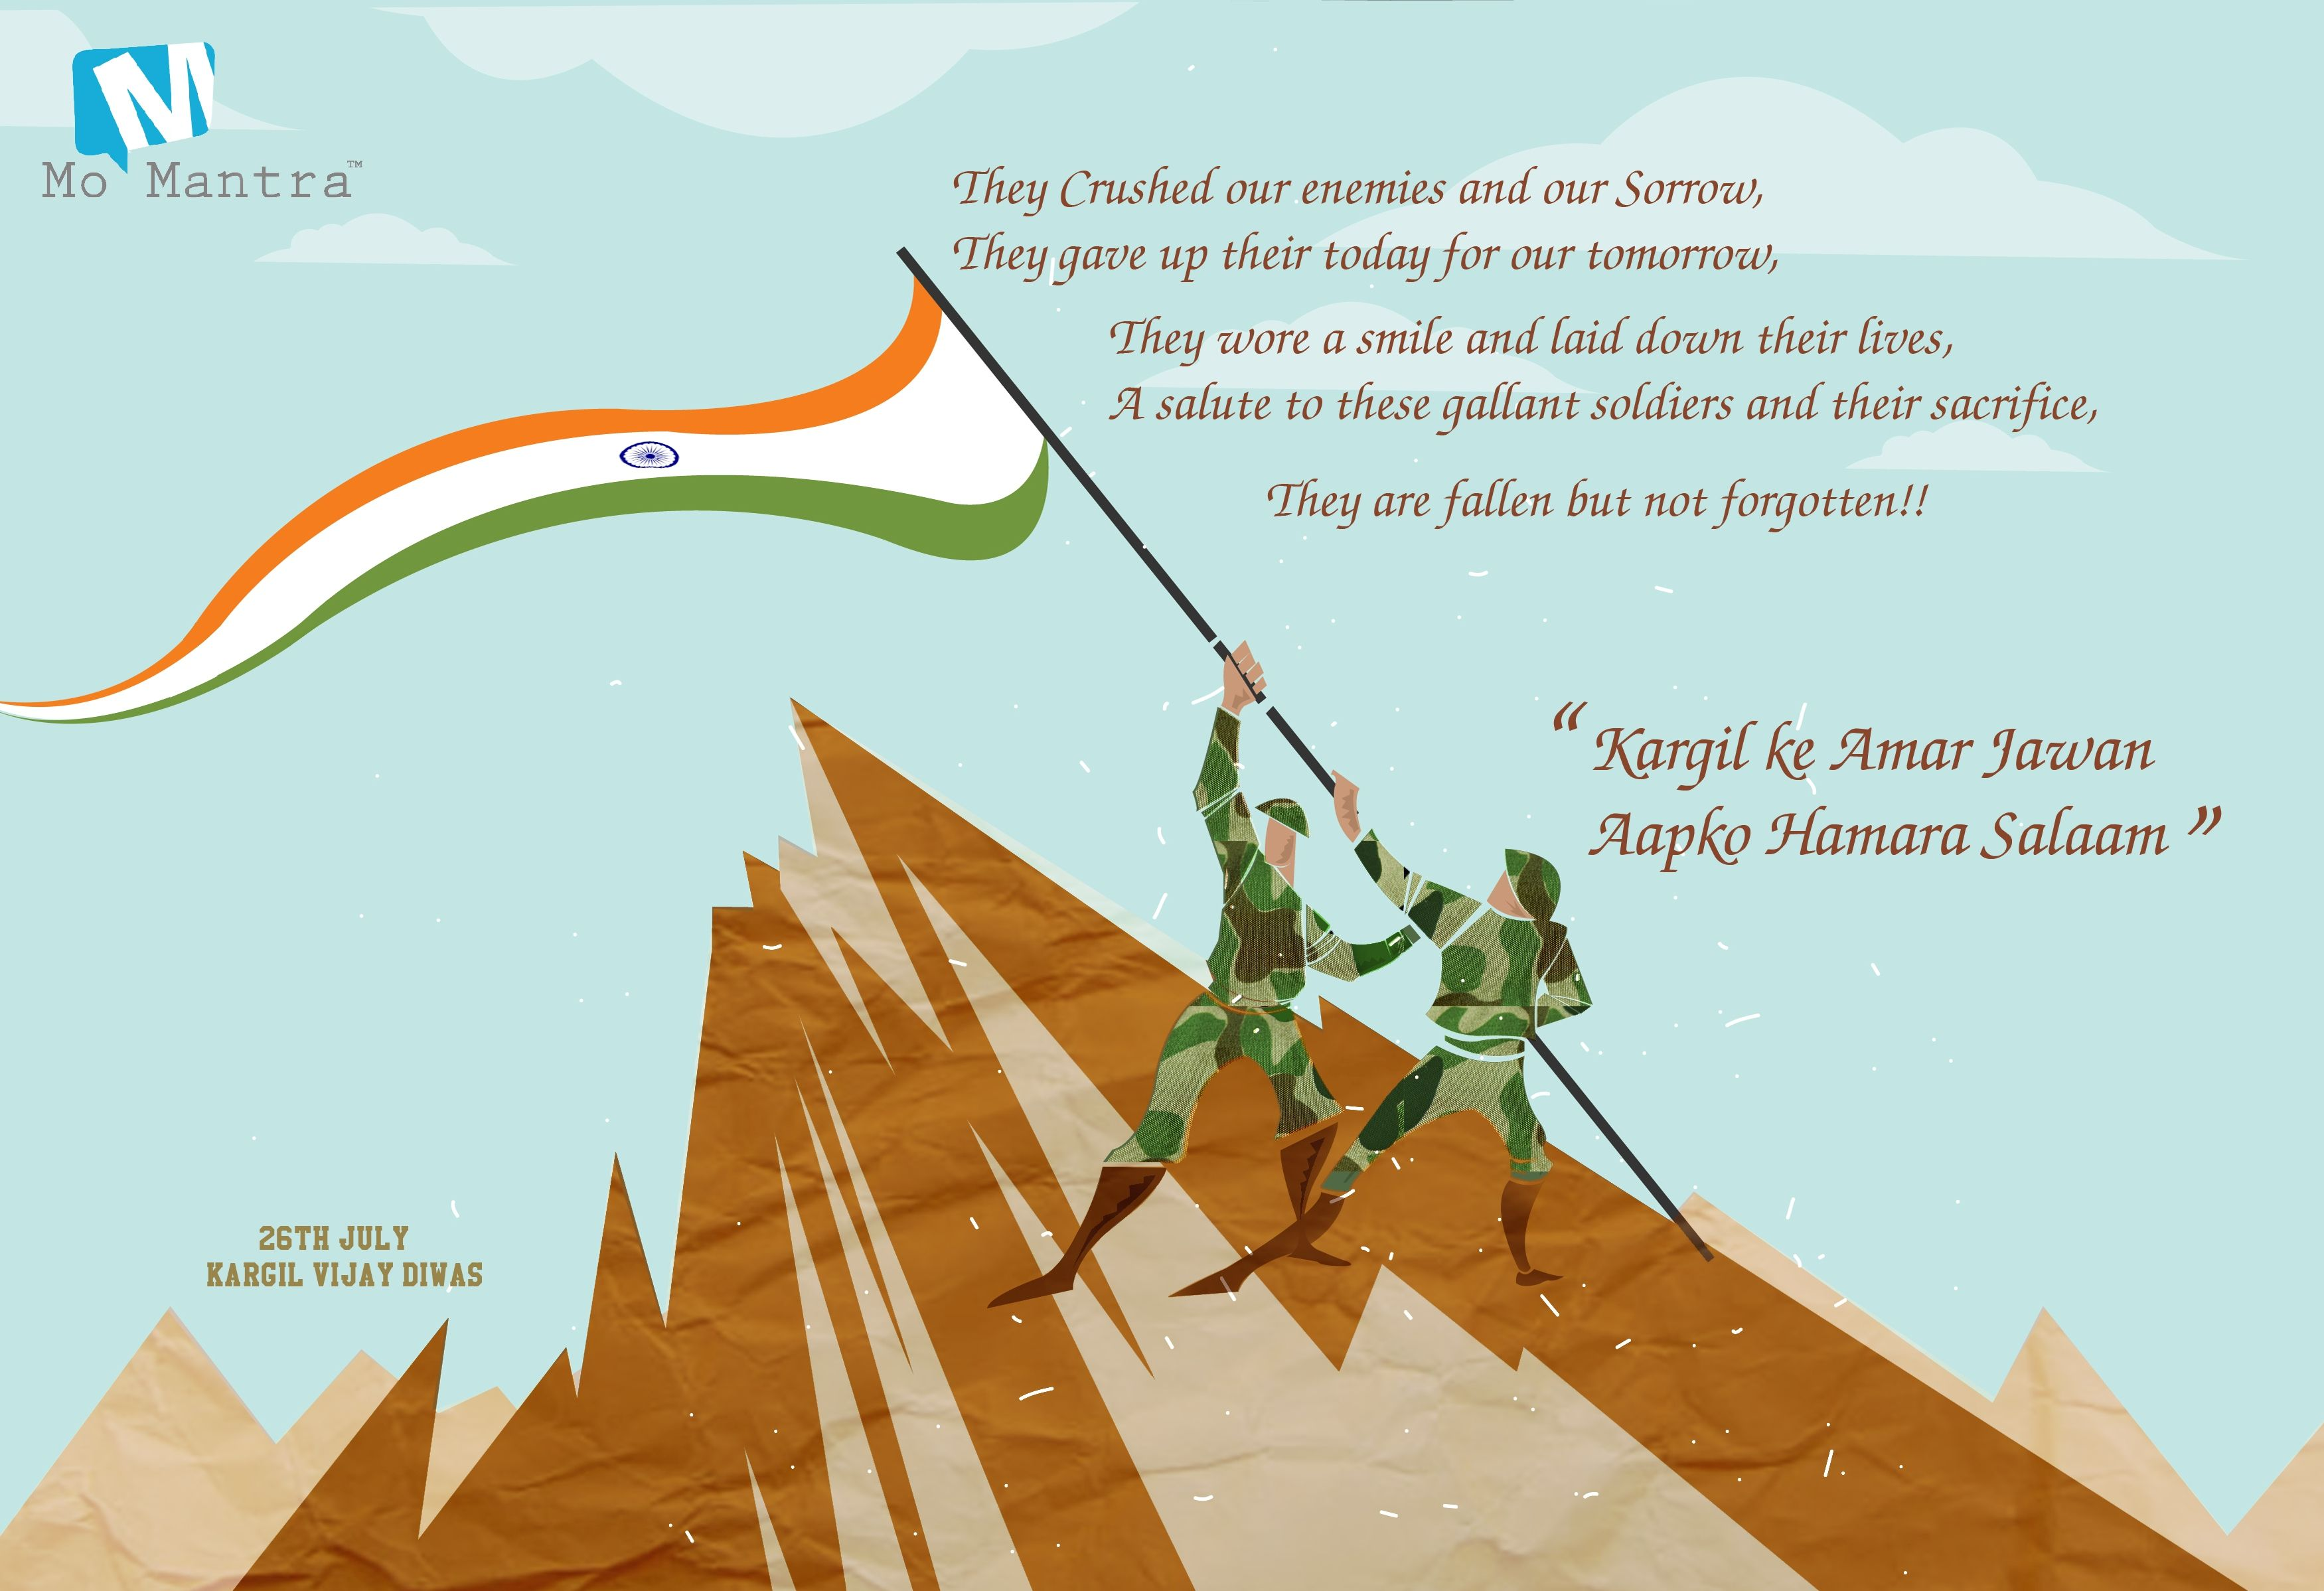 MoMantra salutes to all the unsung heroes of Kargil war 26 July 3501x2397